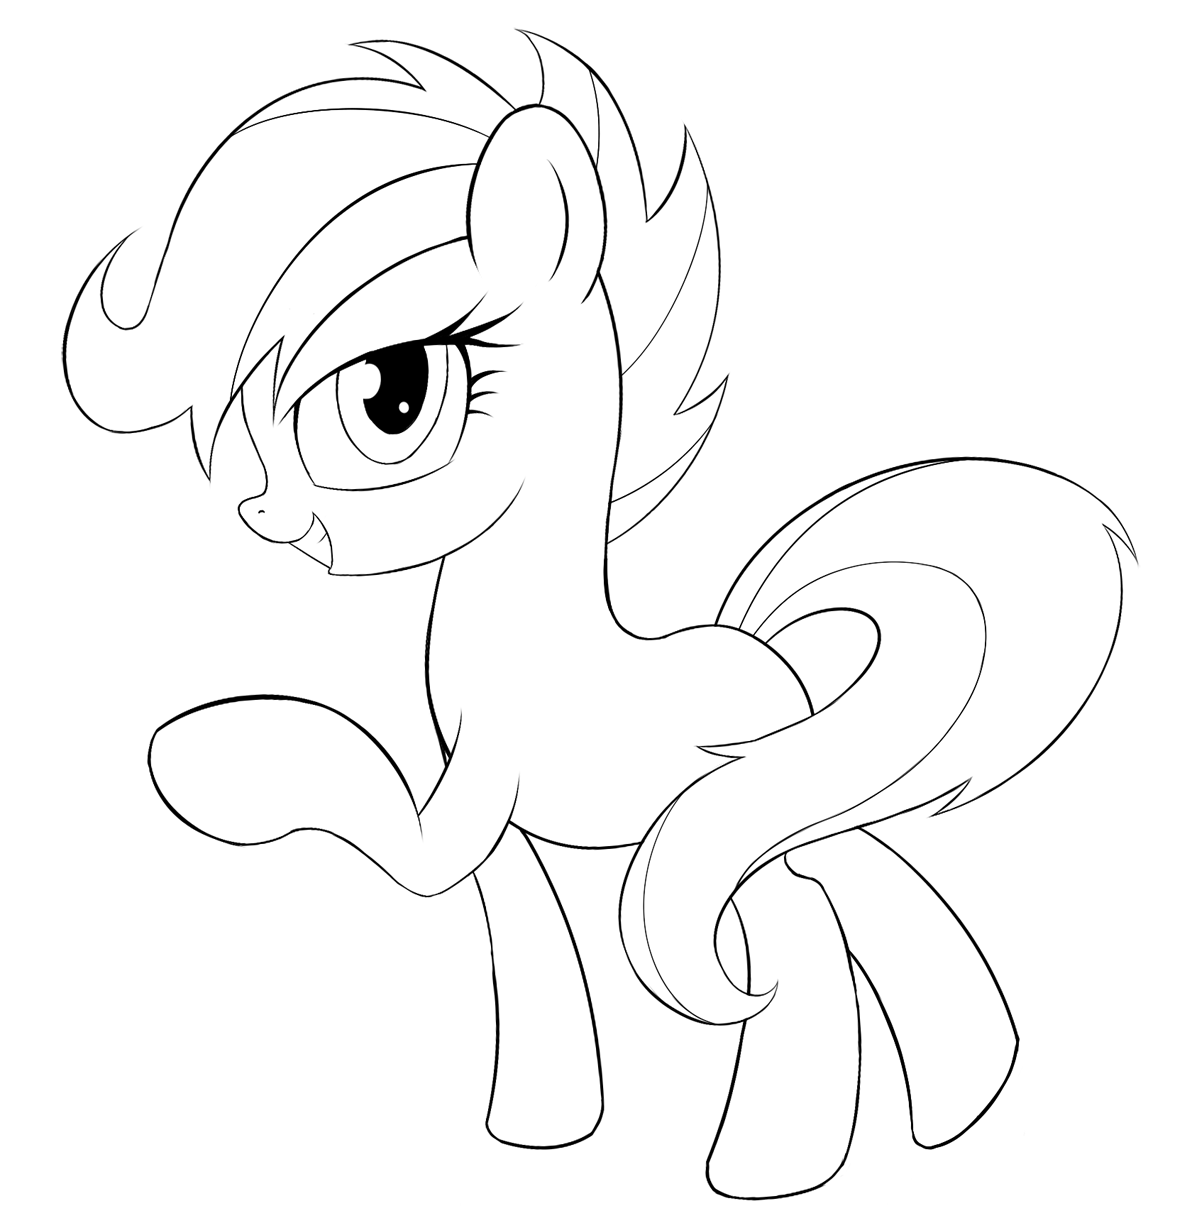 My Little Pony Scootaloo Coloring Pages : My little pony coloring pages scootaloo